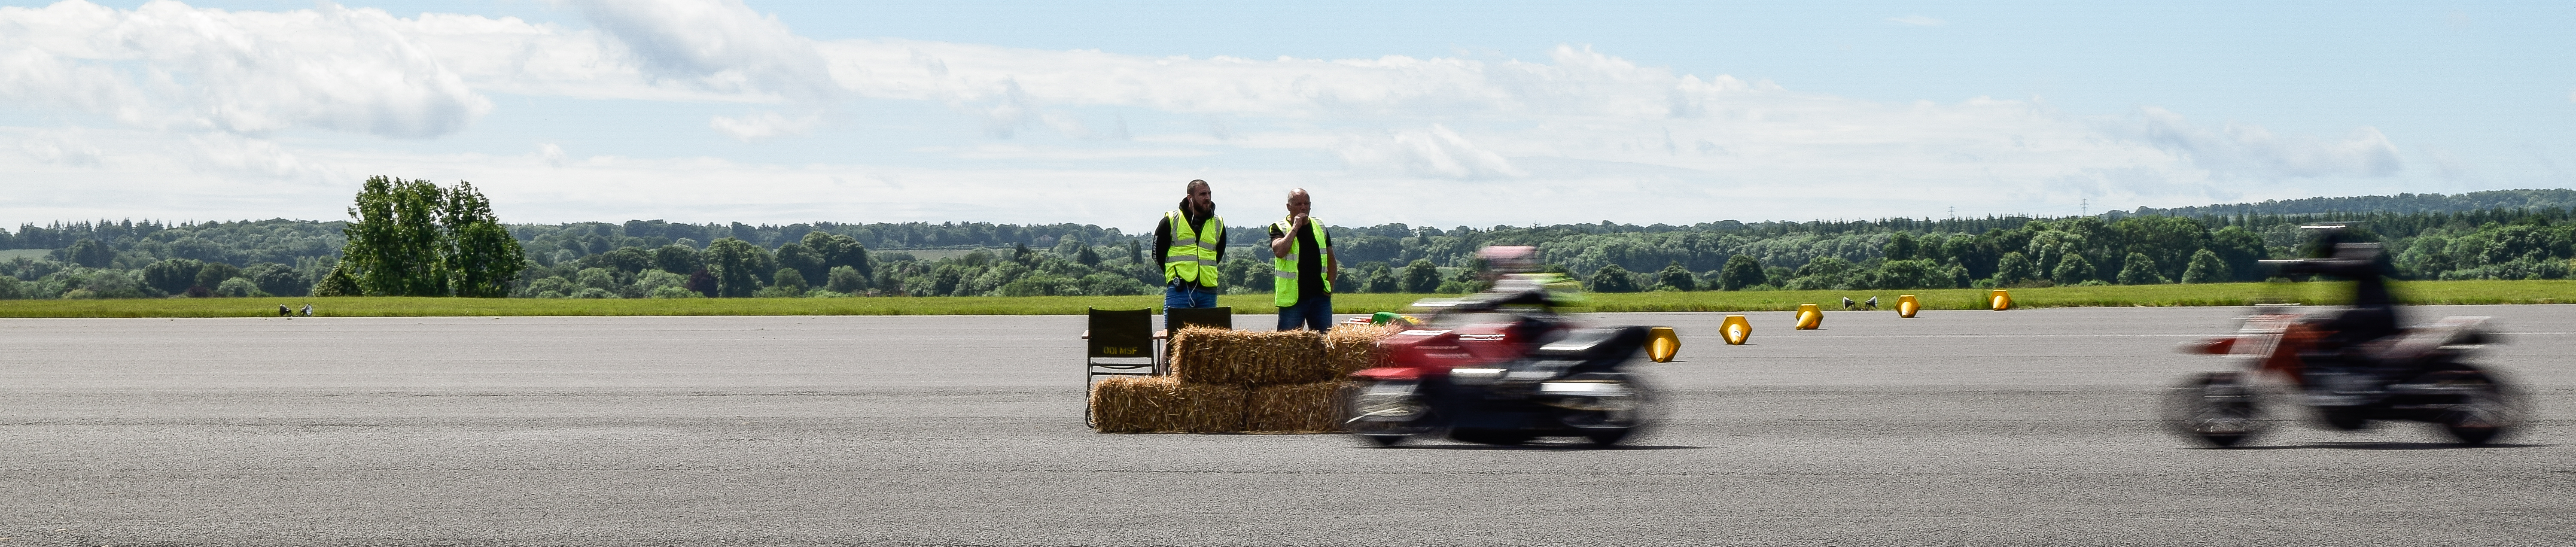 Motorbike racing at Odiham Track Day - Hampshire